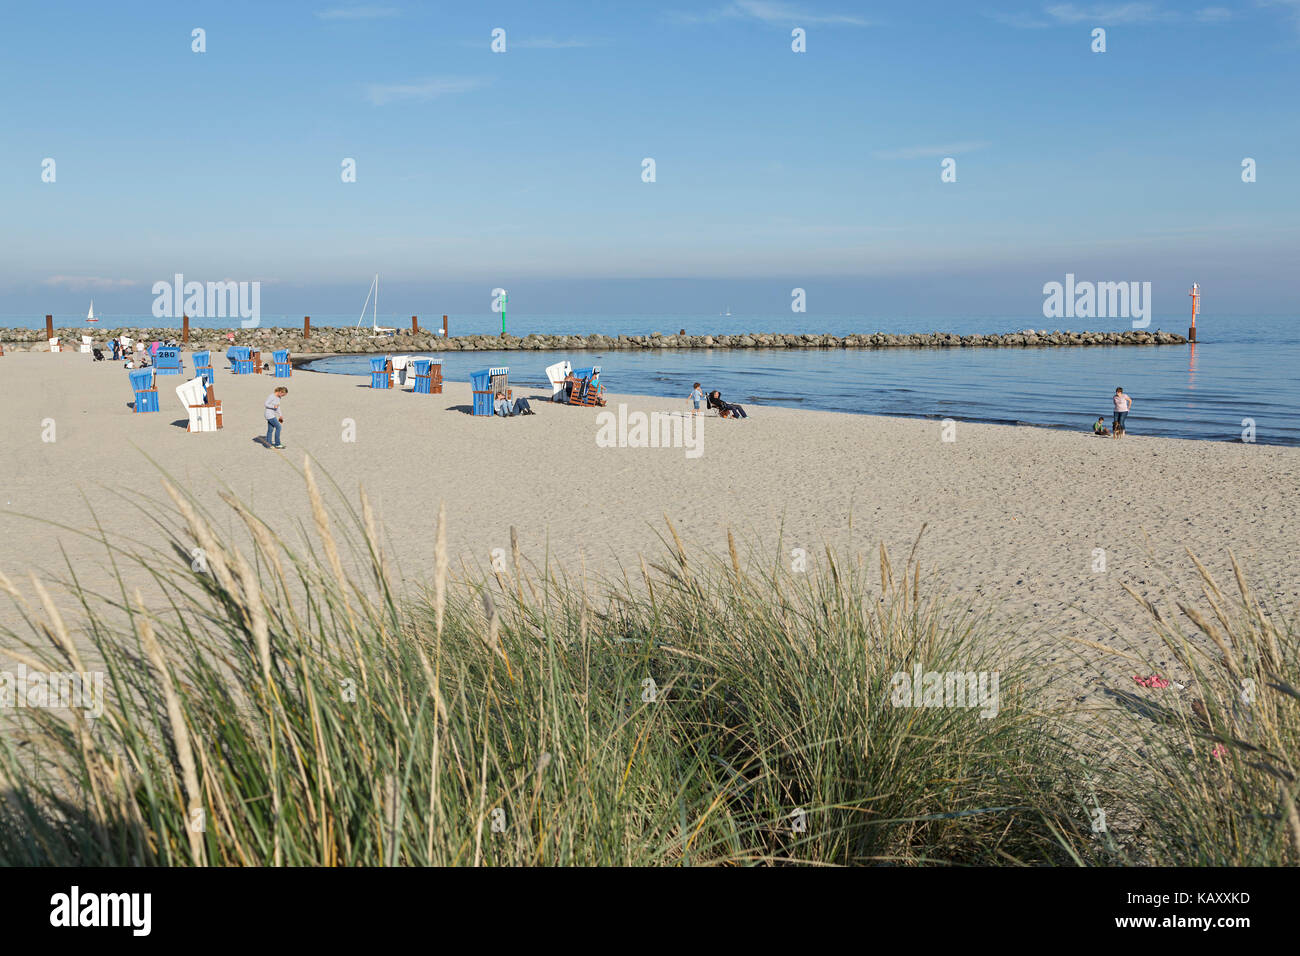 beach, Baltic Sea Spa Damp, Schleswig-Holstein, Germany - Stock Image